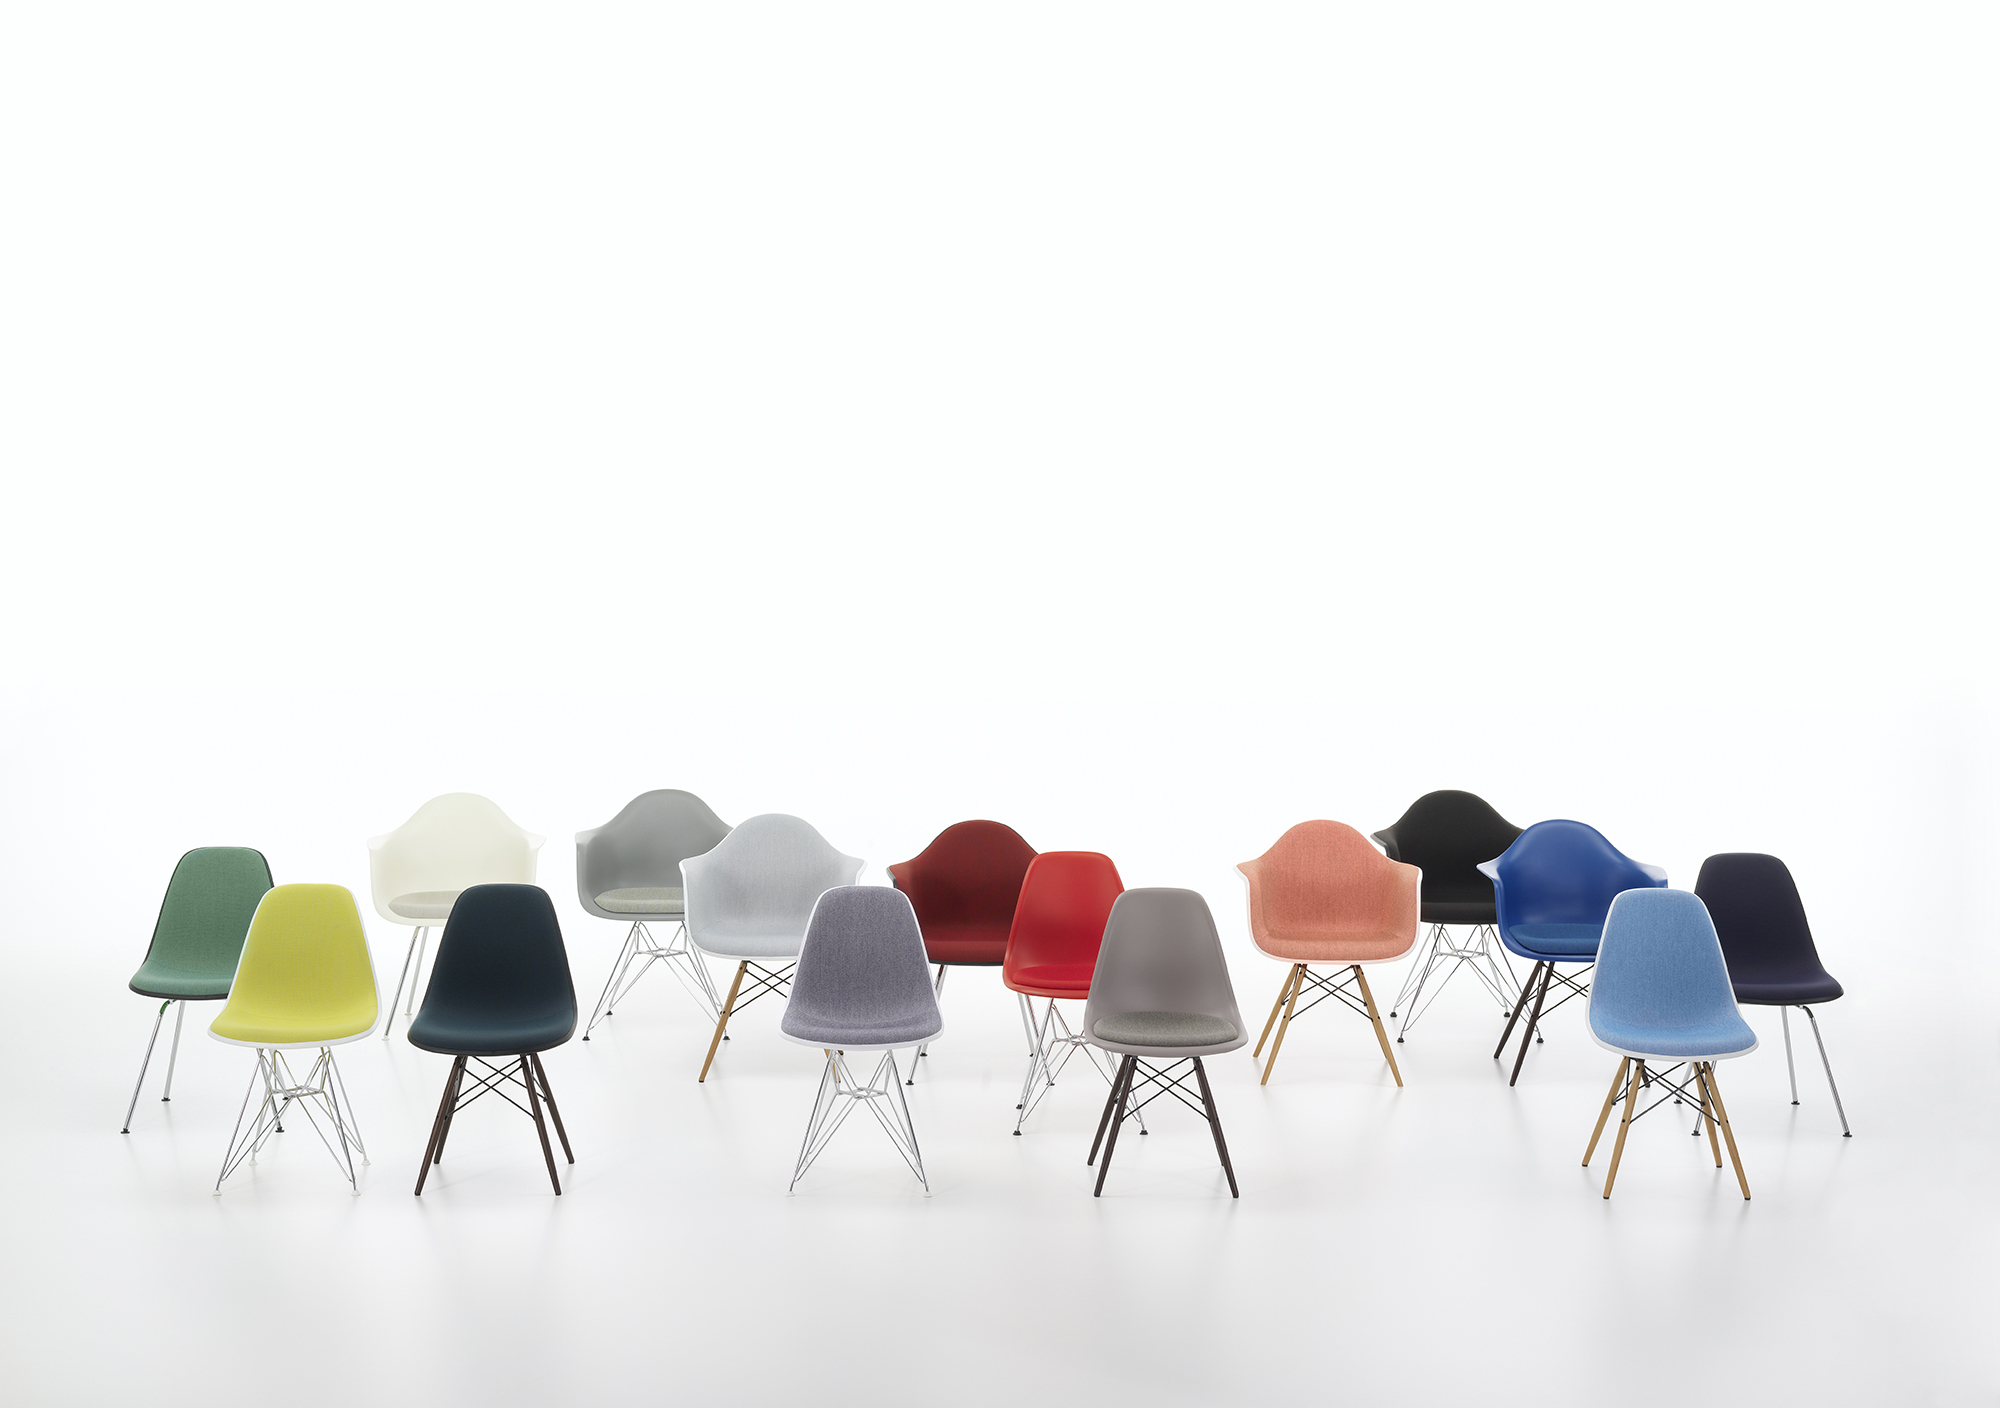 An installation of Eames chairs in Clerkenwell